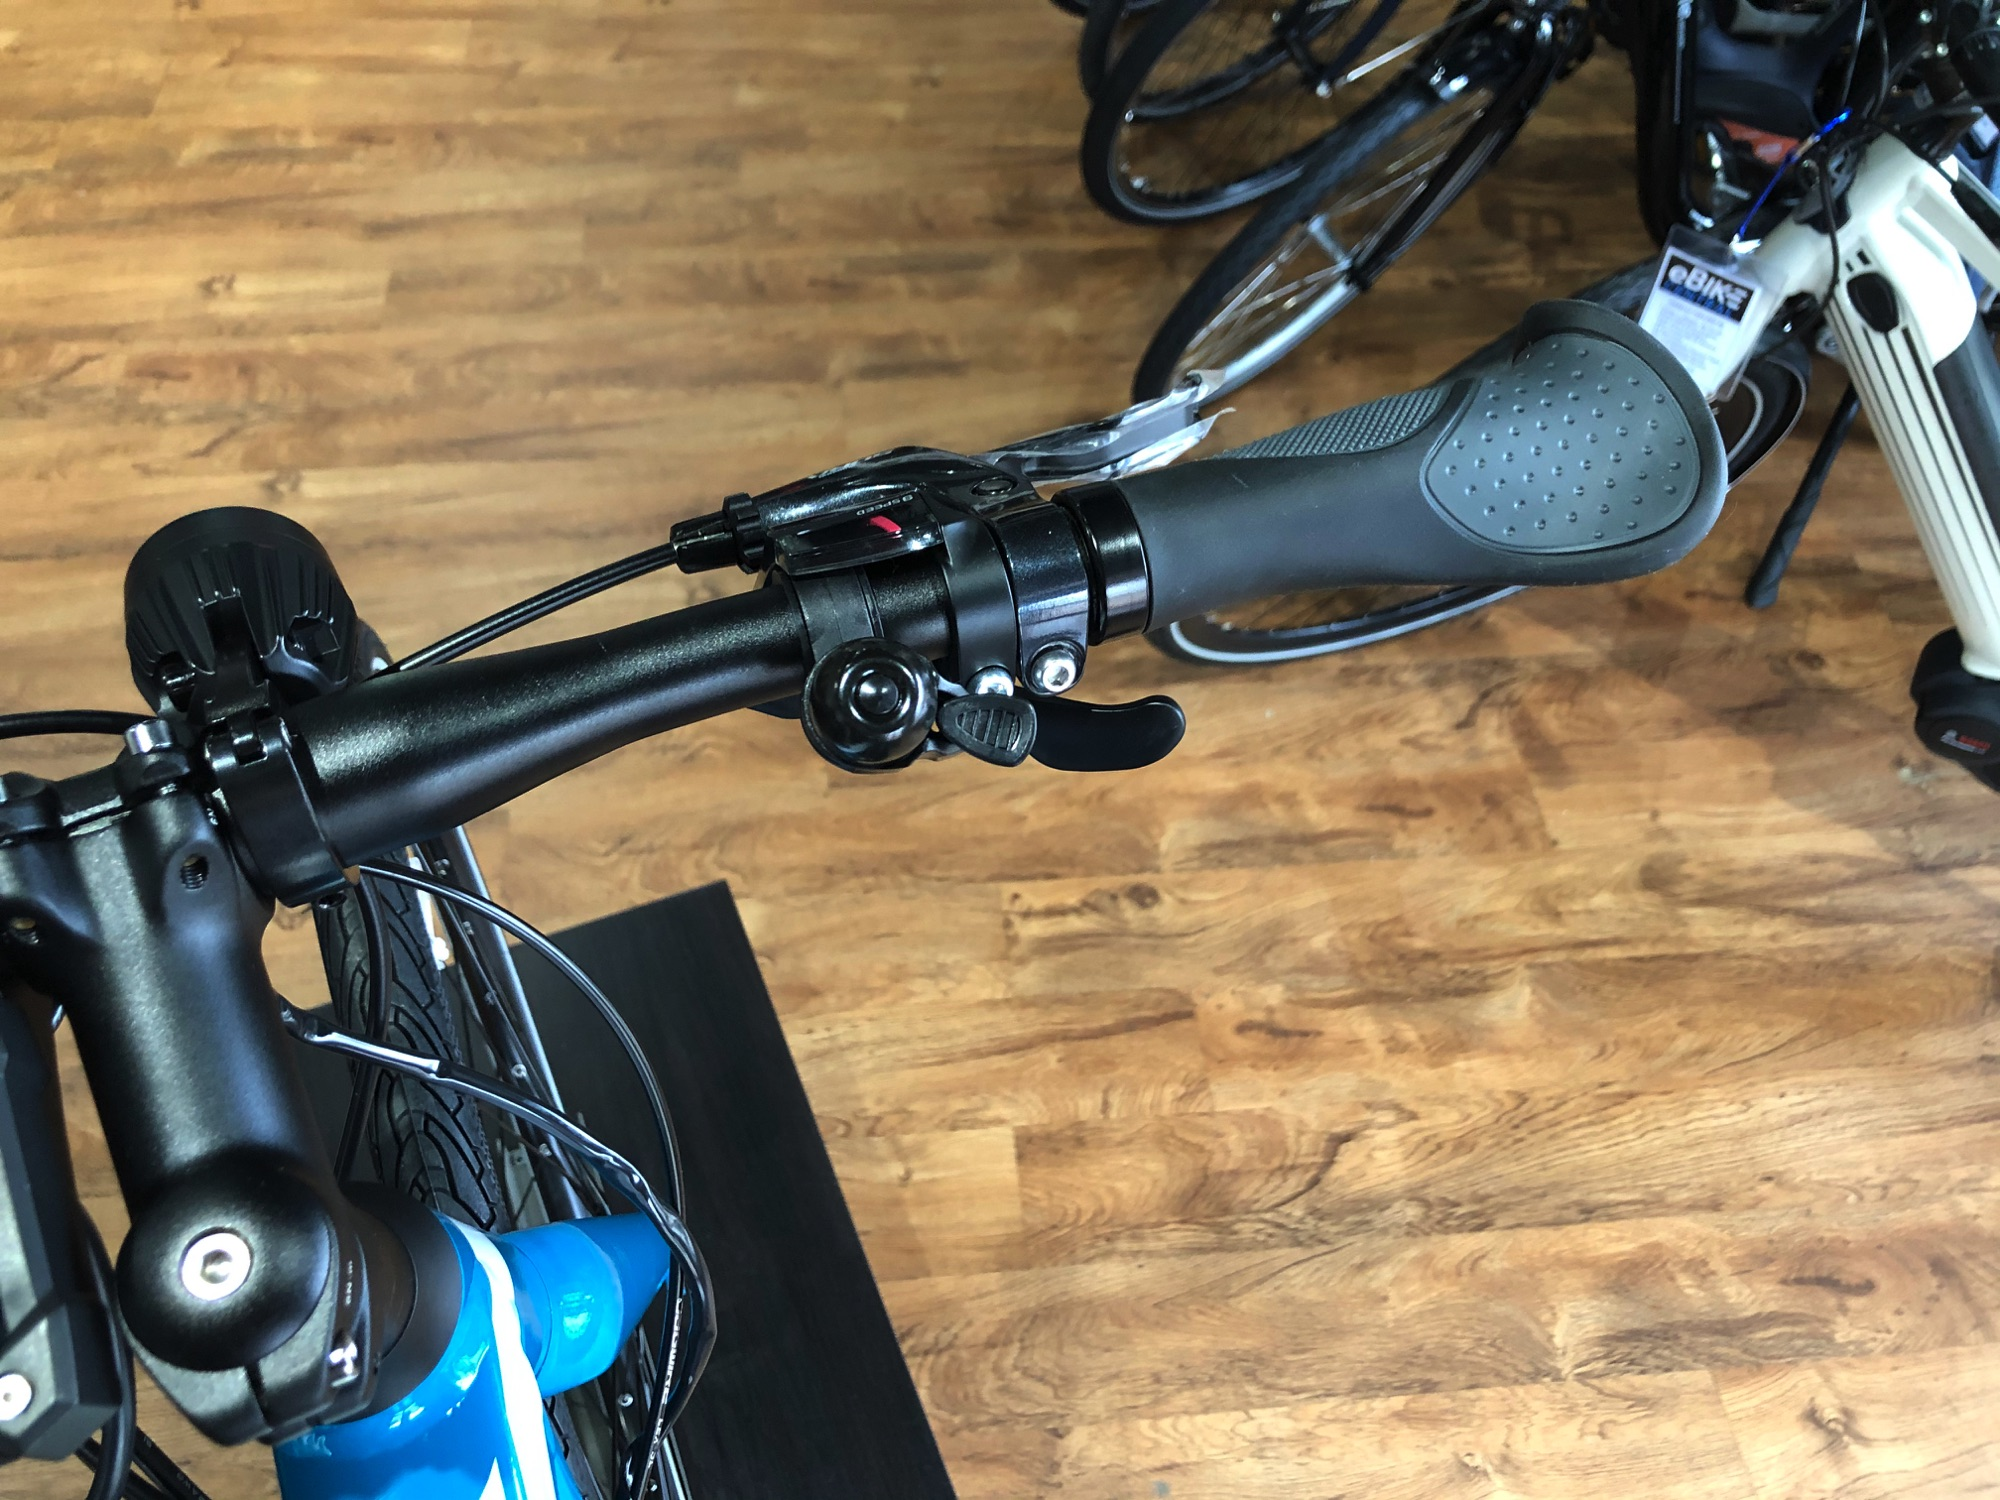 Yamaha CrossCore pedal assist bicycle